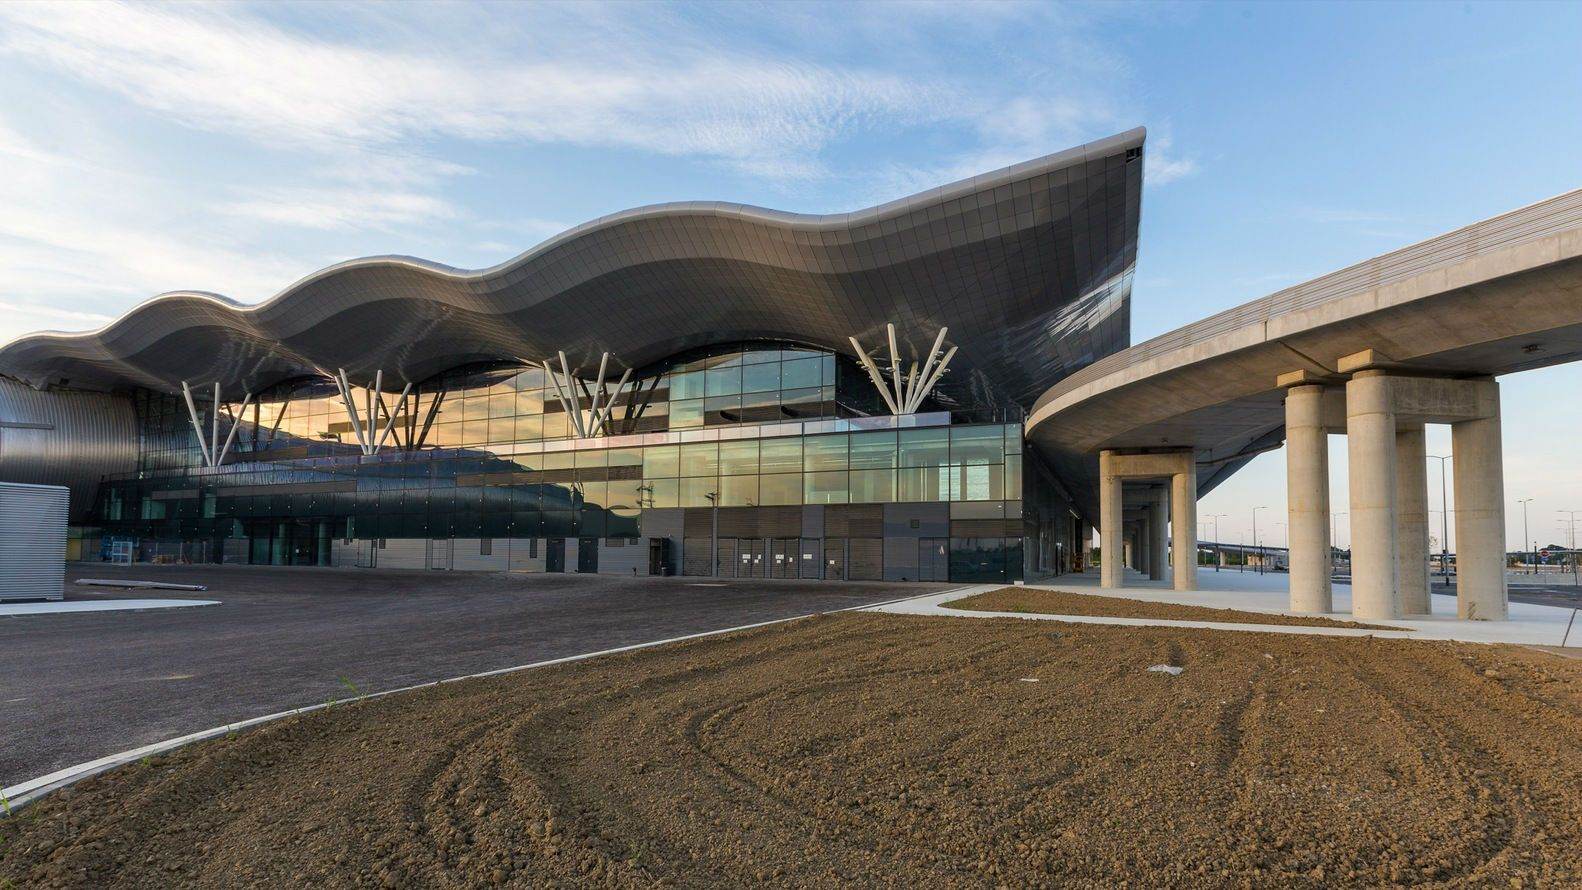 Zagreb Airport Kincl Neidhardt Institut Igh Arch2o Com In 2020 Zagreb Airport City Architecture